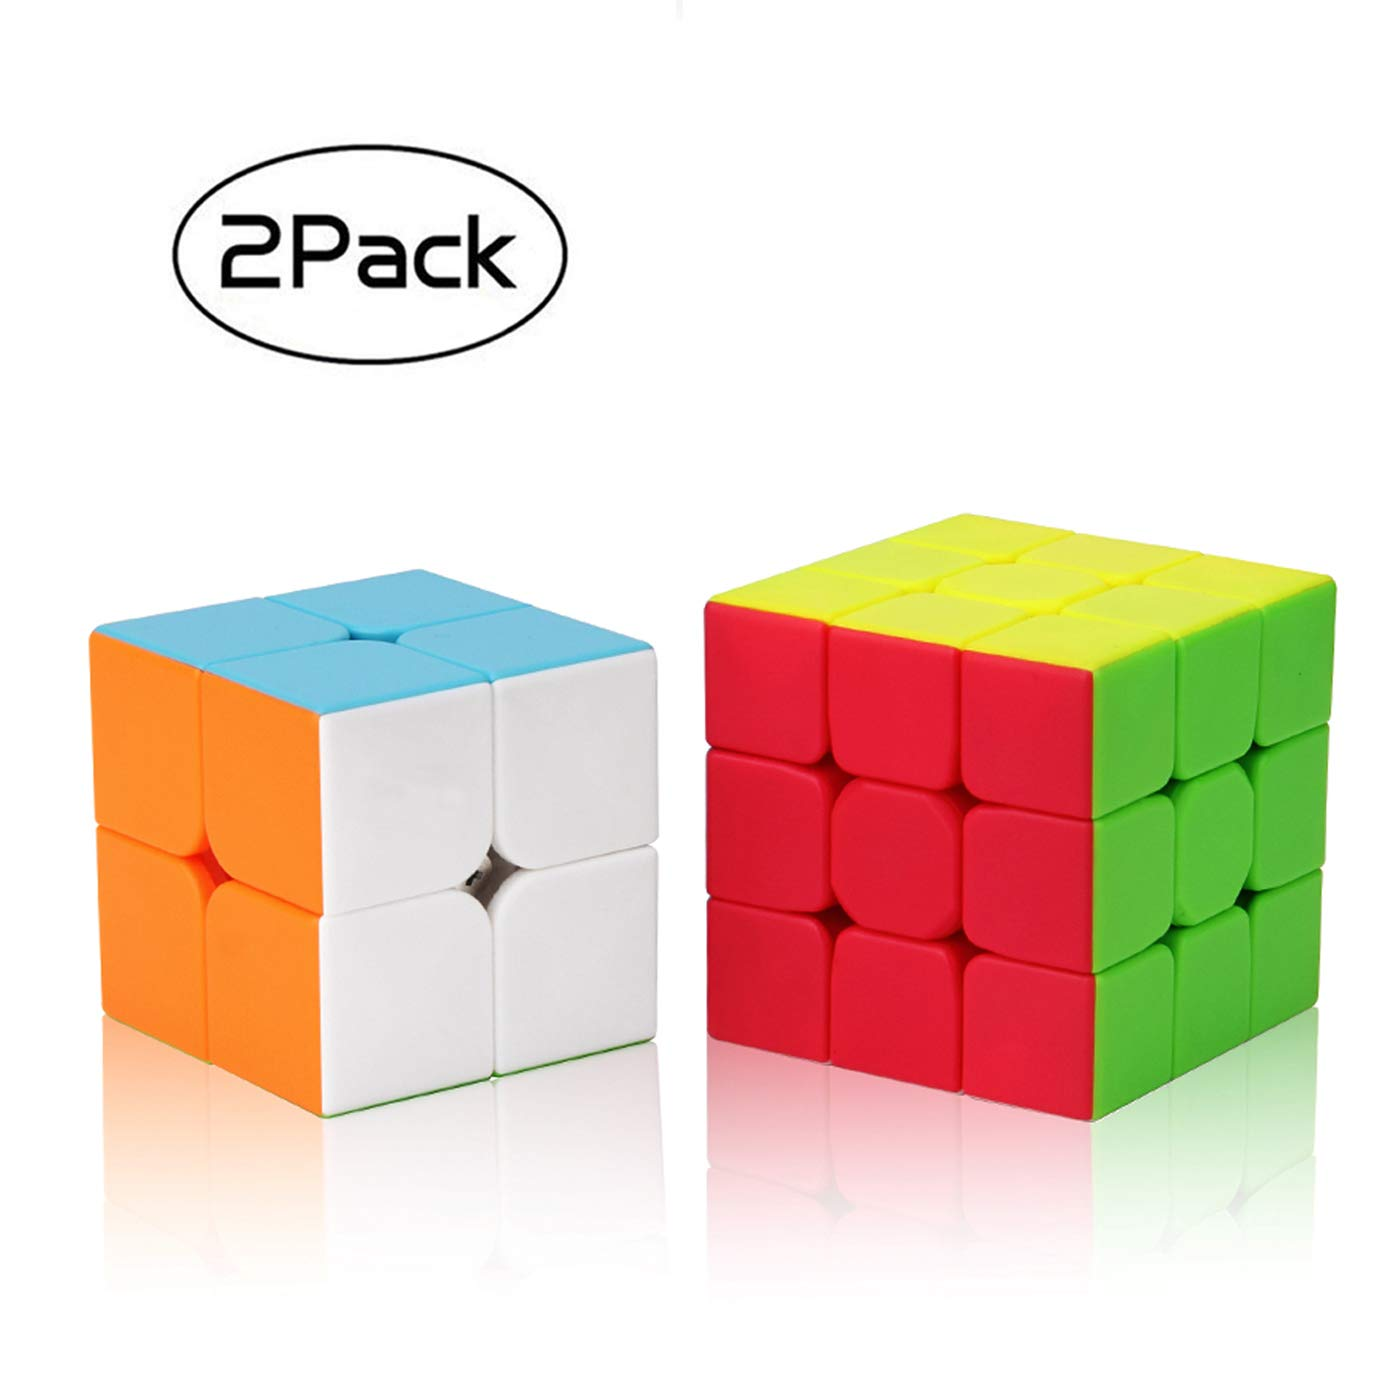 Speed Cube Set, Roxenda Profession 2x2x2 3x3x3 Speed Cube Bundle - Easy Turning and Smooth Play - Solid Durable & Stickerless Frosted - Turns Quicker and More Precisely Than Original